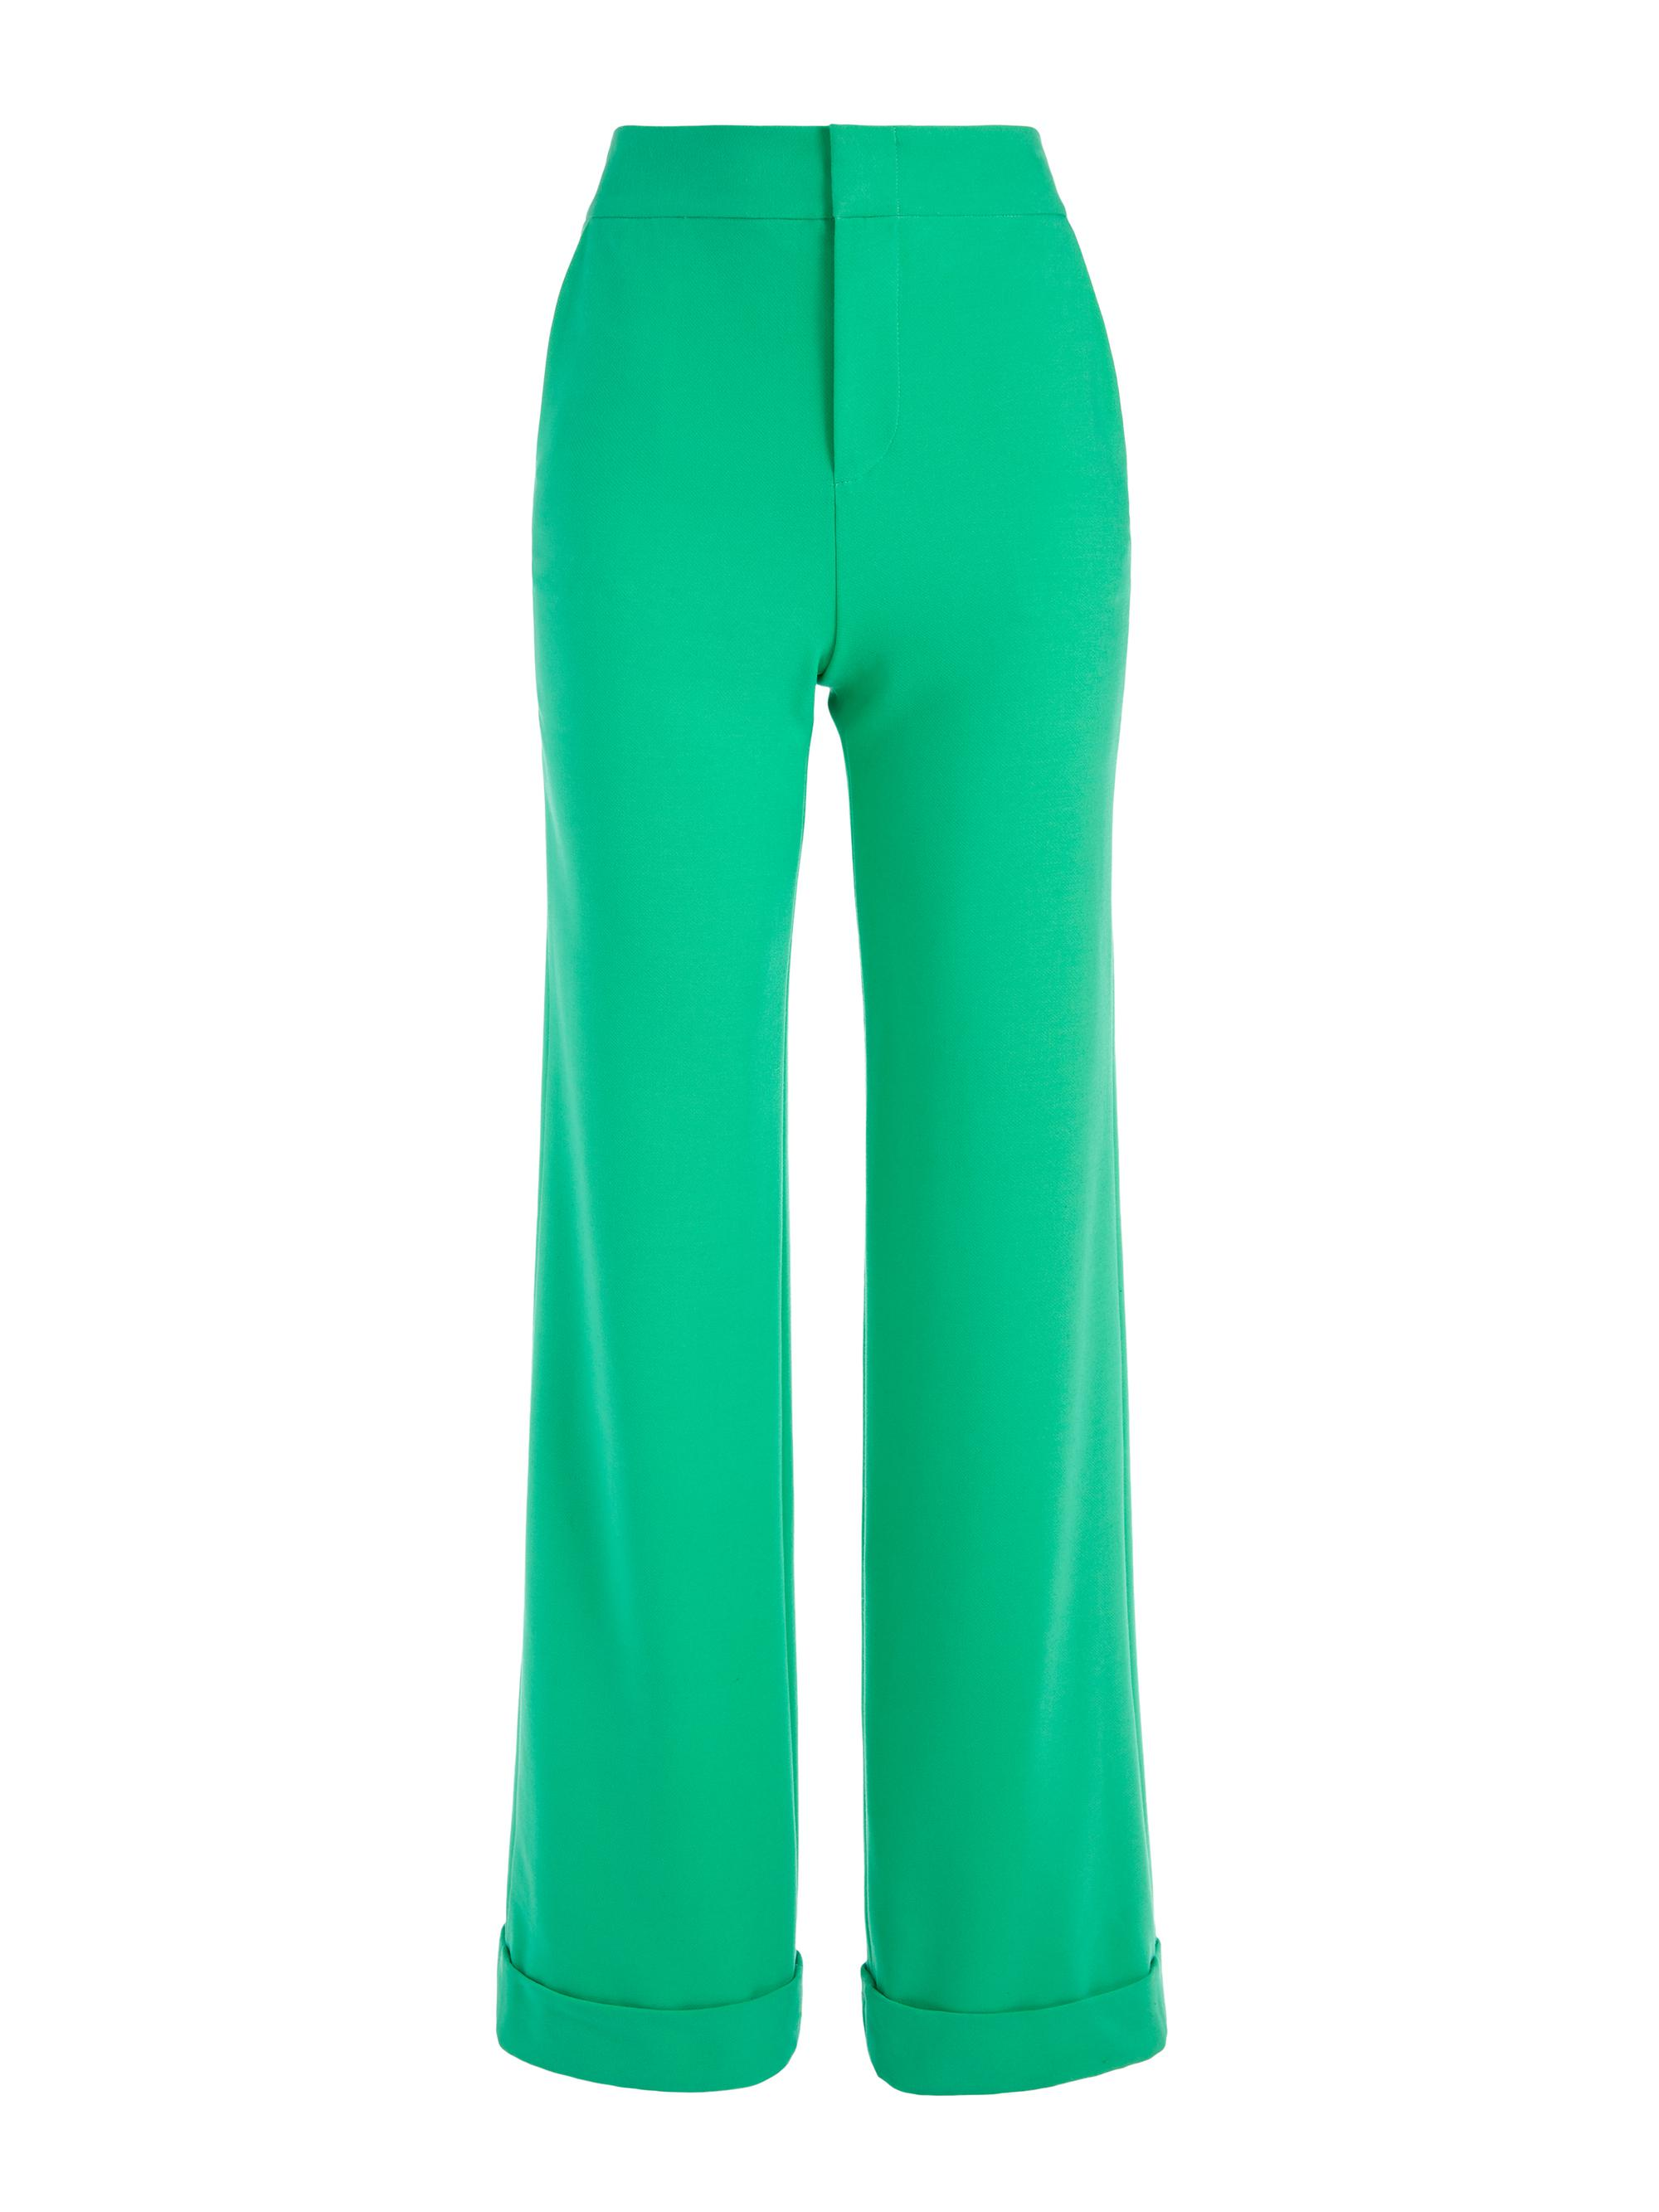 DYLAN HIGH WAISTED WIDE LEG PANT 5